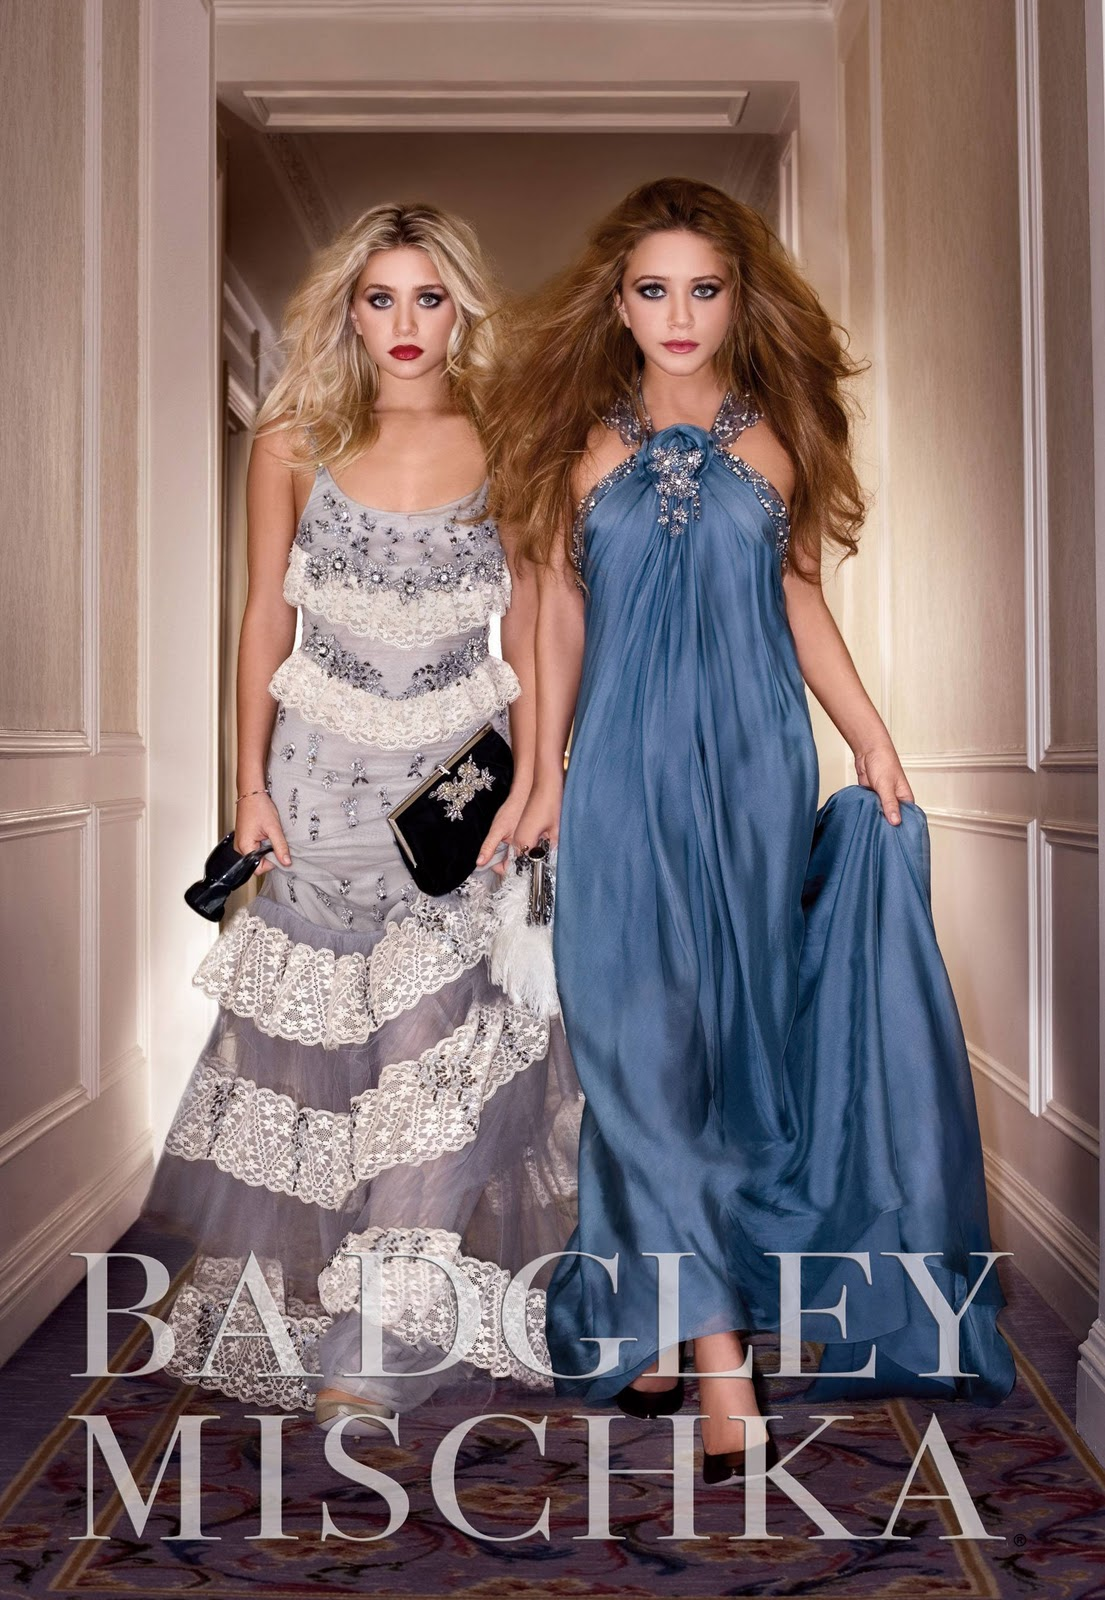 http://1.bp.blogspot.com/_s5f7btuhJwk/TQpp9jyLlDI/AAAAAAAAAd4/WWv5Joj34Cs/s1600/mary-kate+and+ashley+olsen+for+badgley+mischka+ad+campaign.jpg